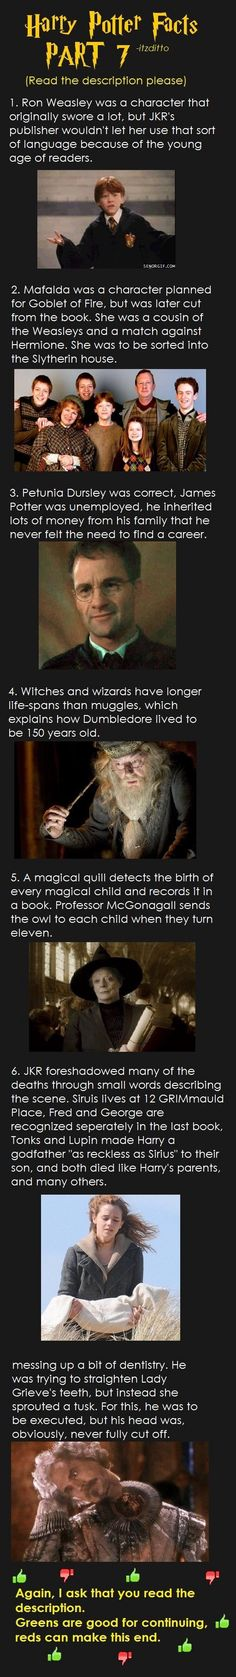 HP Facts Part 7